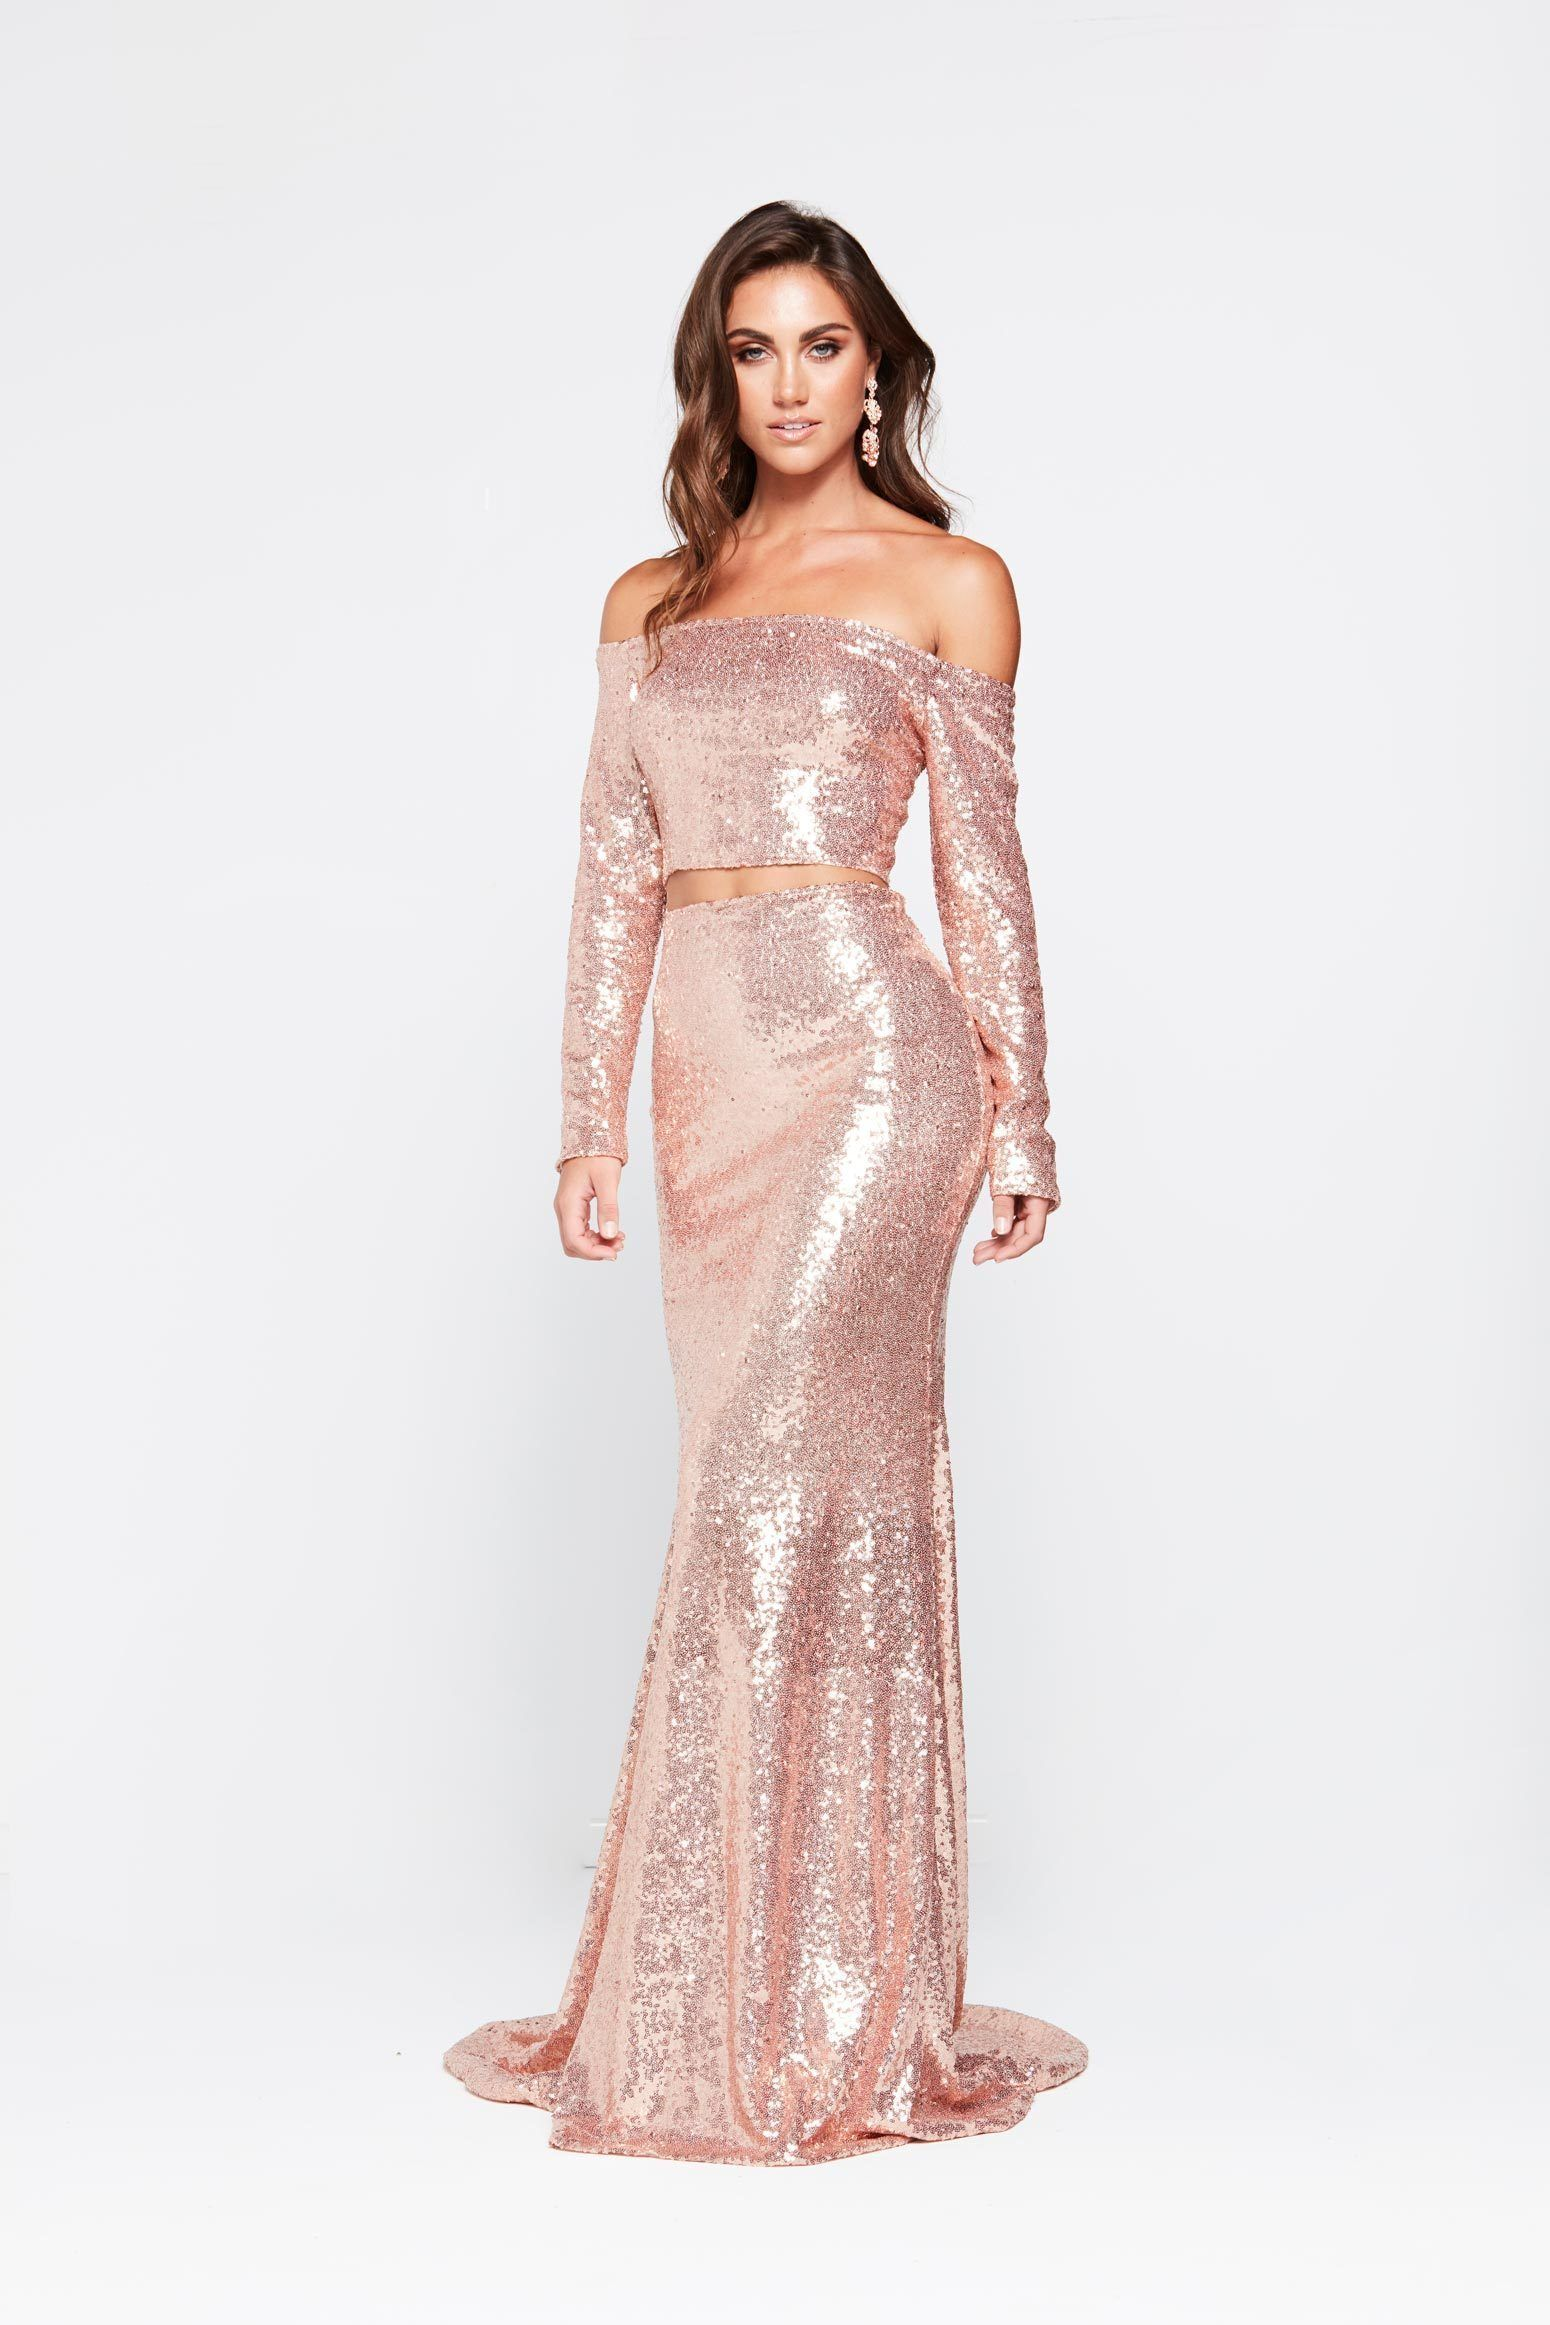 8b1af5224b8 How can I stand out at prom   twopiecedress